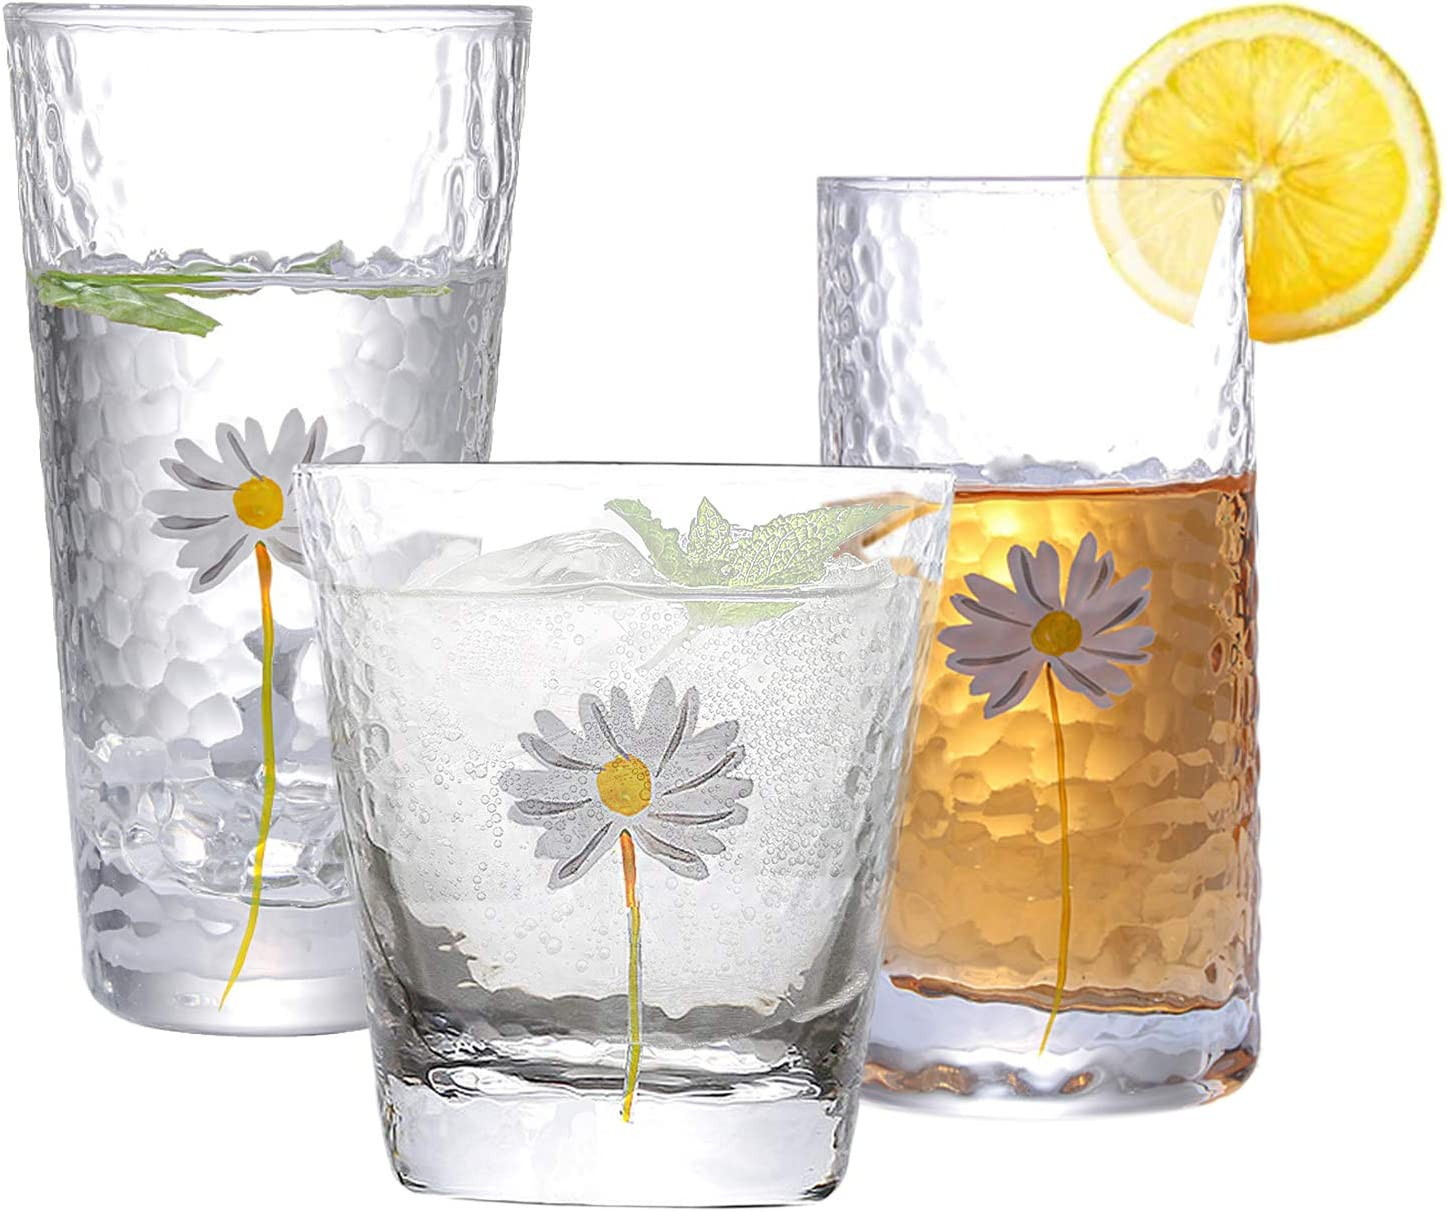 Highball Drinking Gasses,Tall Cocktail Glasses Kitchen Entertainment Ice Tea Beverage Cups Glassware for Water,Juice,Beer and Valentine's Day Gifts 10oz/12oz/14oz